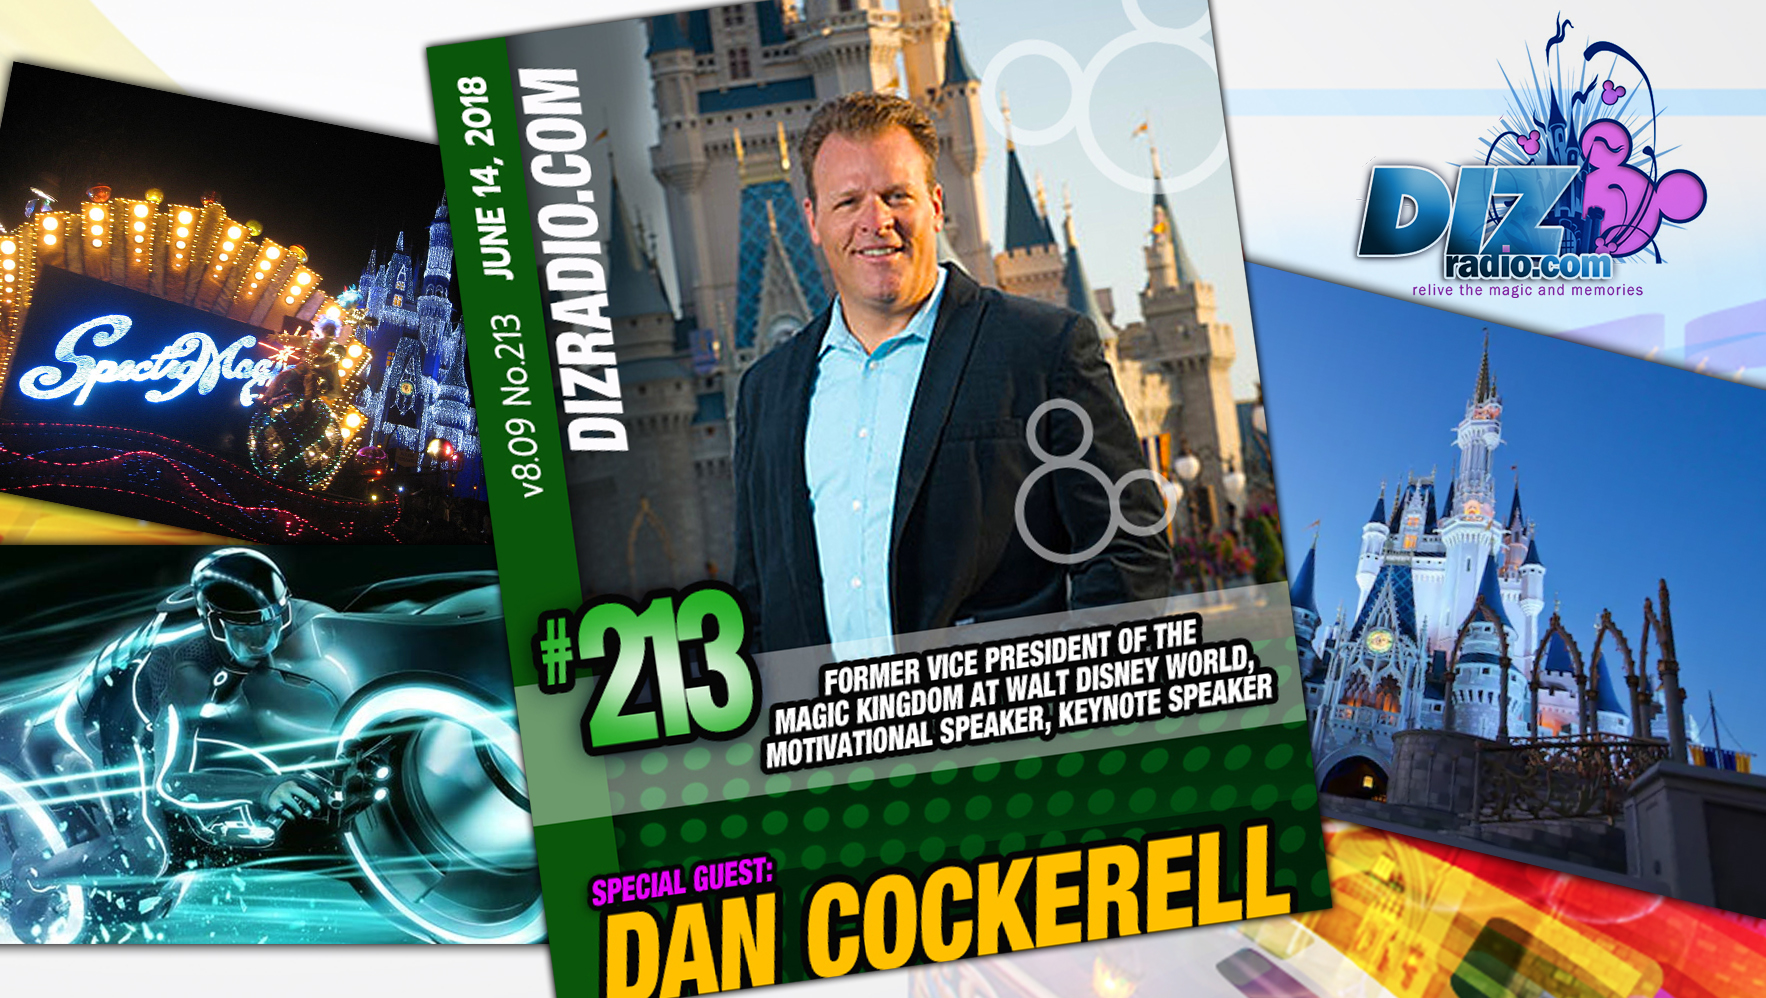 DisneyBlu's DizRadio Disney on Demand Show #213 w/ Special Guest: DAN COCKERELL (Former Vice President of the Magic Kingdom at Walt Disney World, Motivational Speaker, Keynote Speaker)